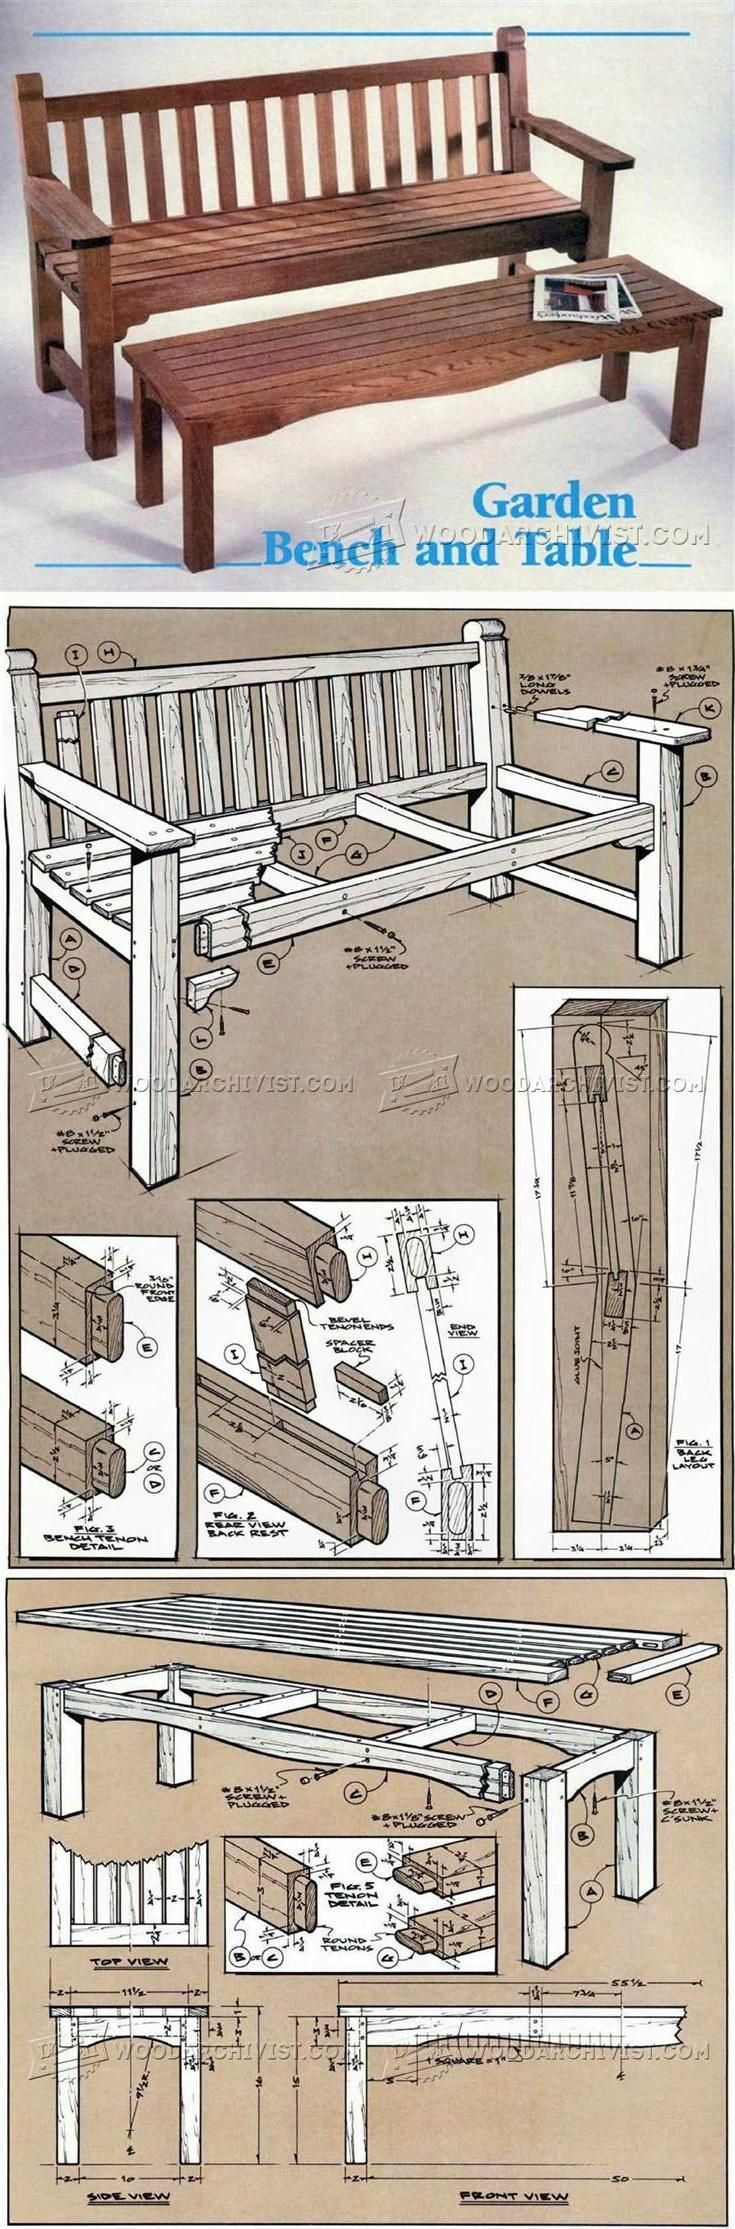 Garden Bench and Table Plans - Outdoor Furniture Plans and Projects | WoodArchivist.com